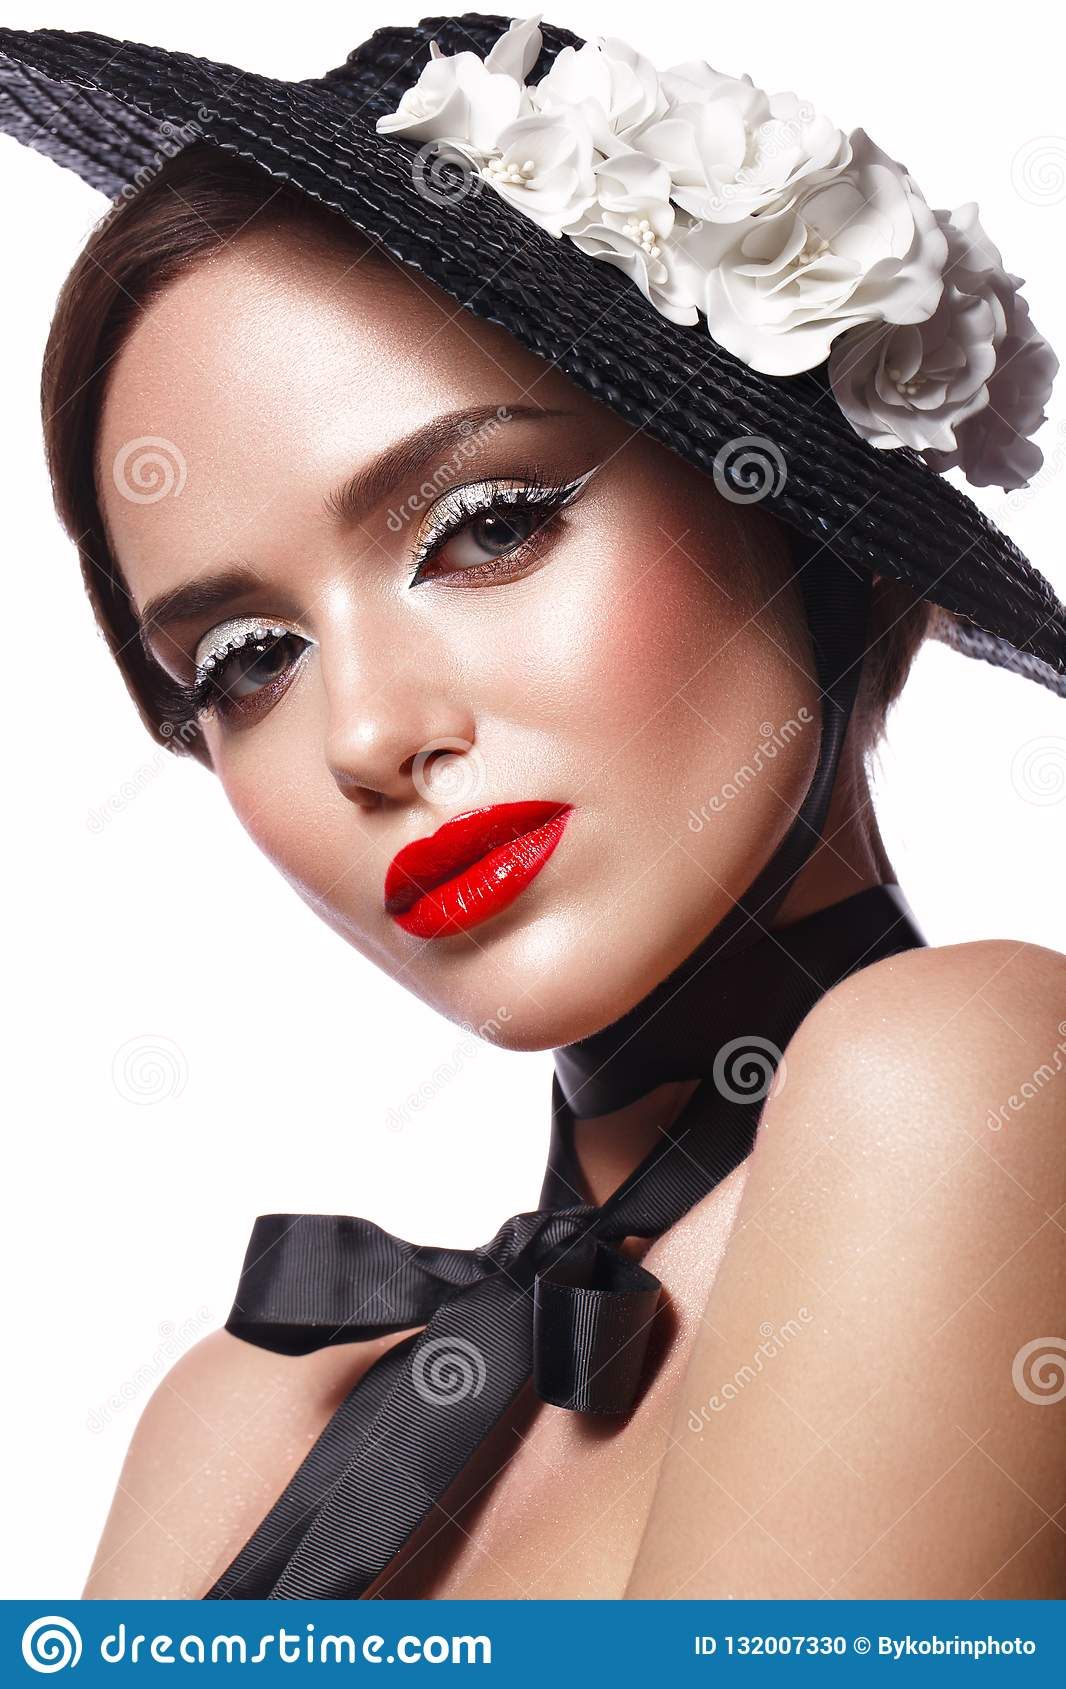 Beautiful girl in a black hat with flowers and retro makeup. Beauty face.